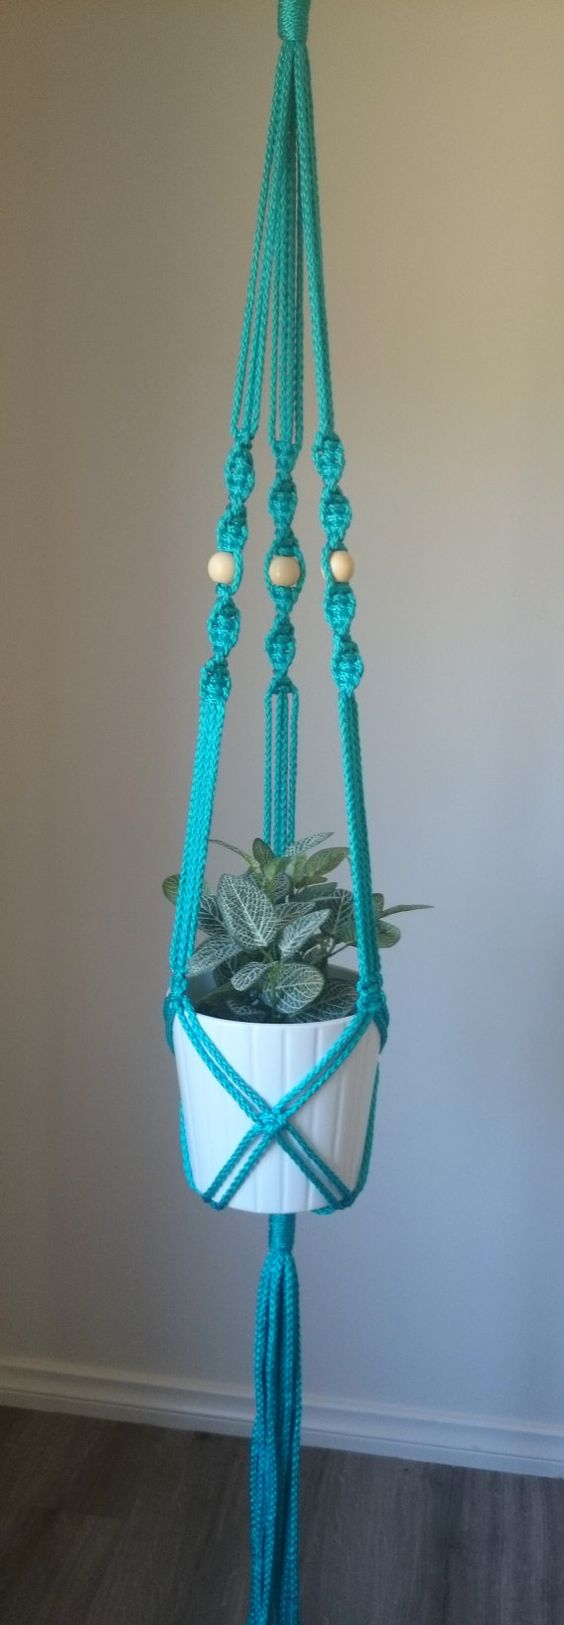 macrame pot plant hanger elwood by thecolouredknot on etsy macrame weaving. Black Bedroom Furniture Sets. Home Design Ideas